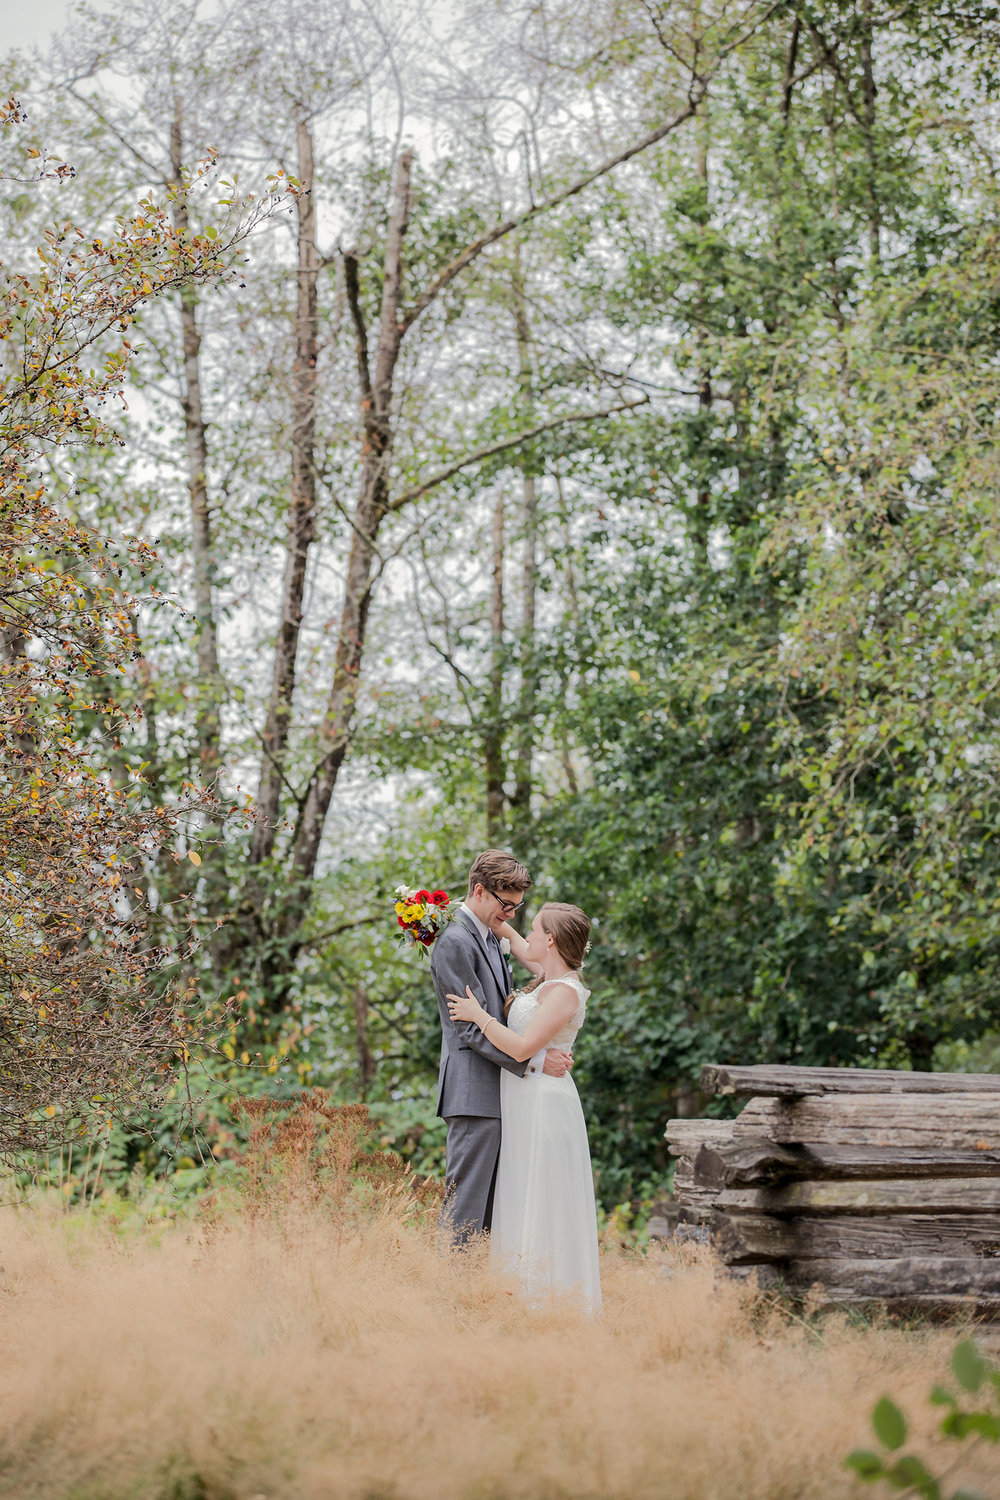 Dayna and Dylan - WT (301 of 793).jpg